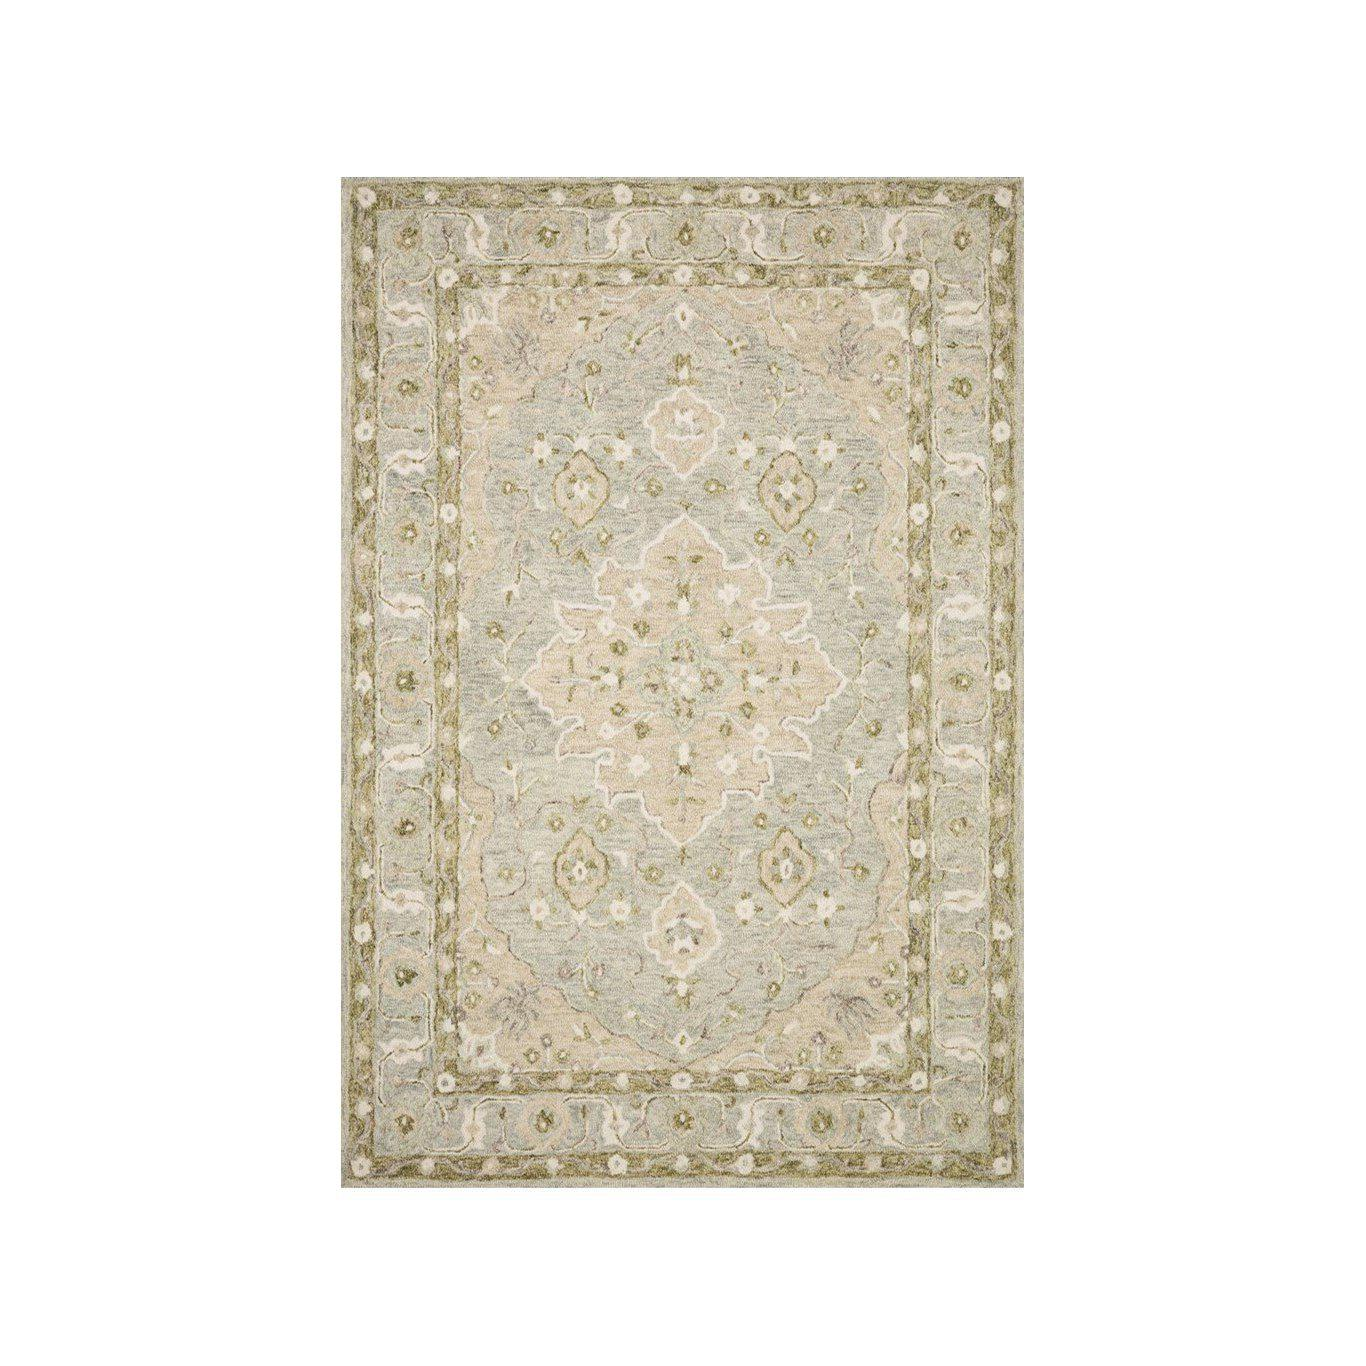 Joanna Gaines Ryeland Rug Collection - RYE-06 Grey/Sage-Loloi Rugs-Blue Hand Home